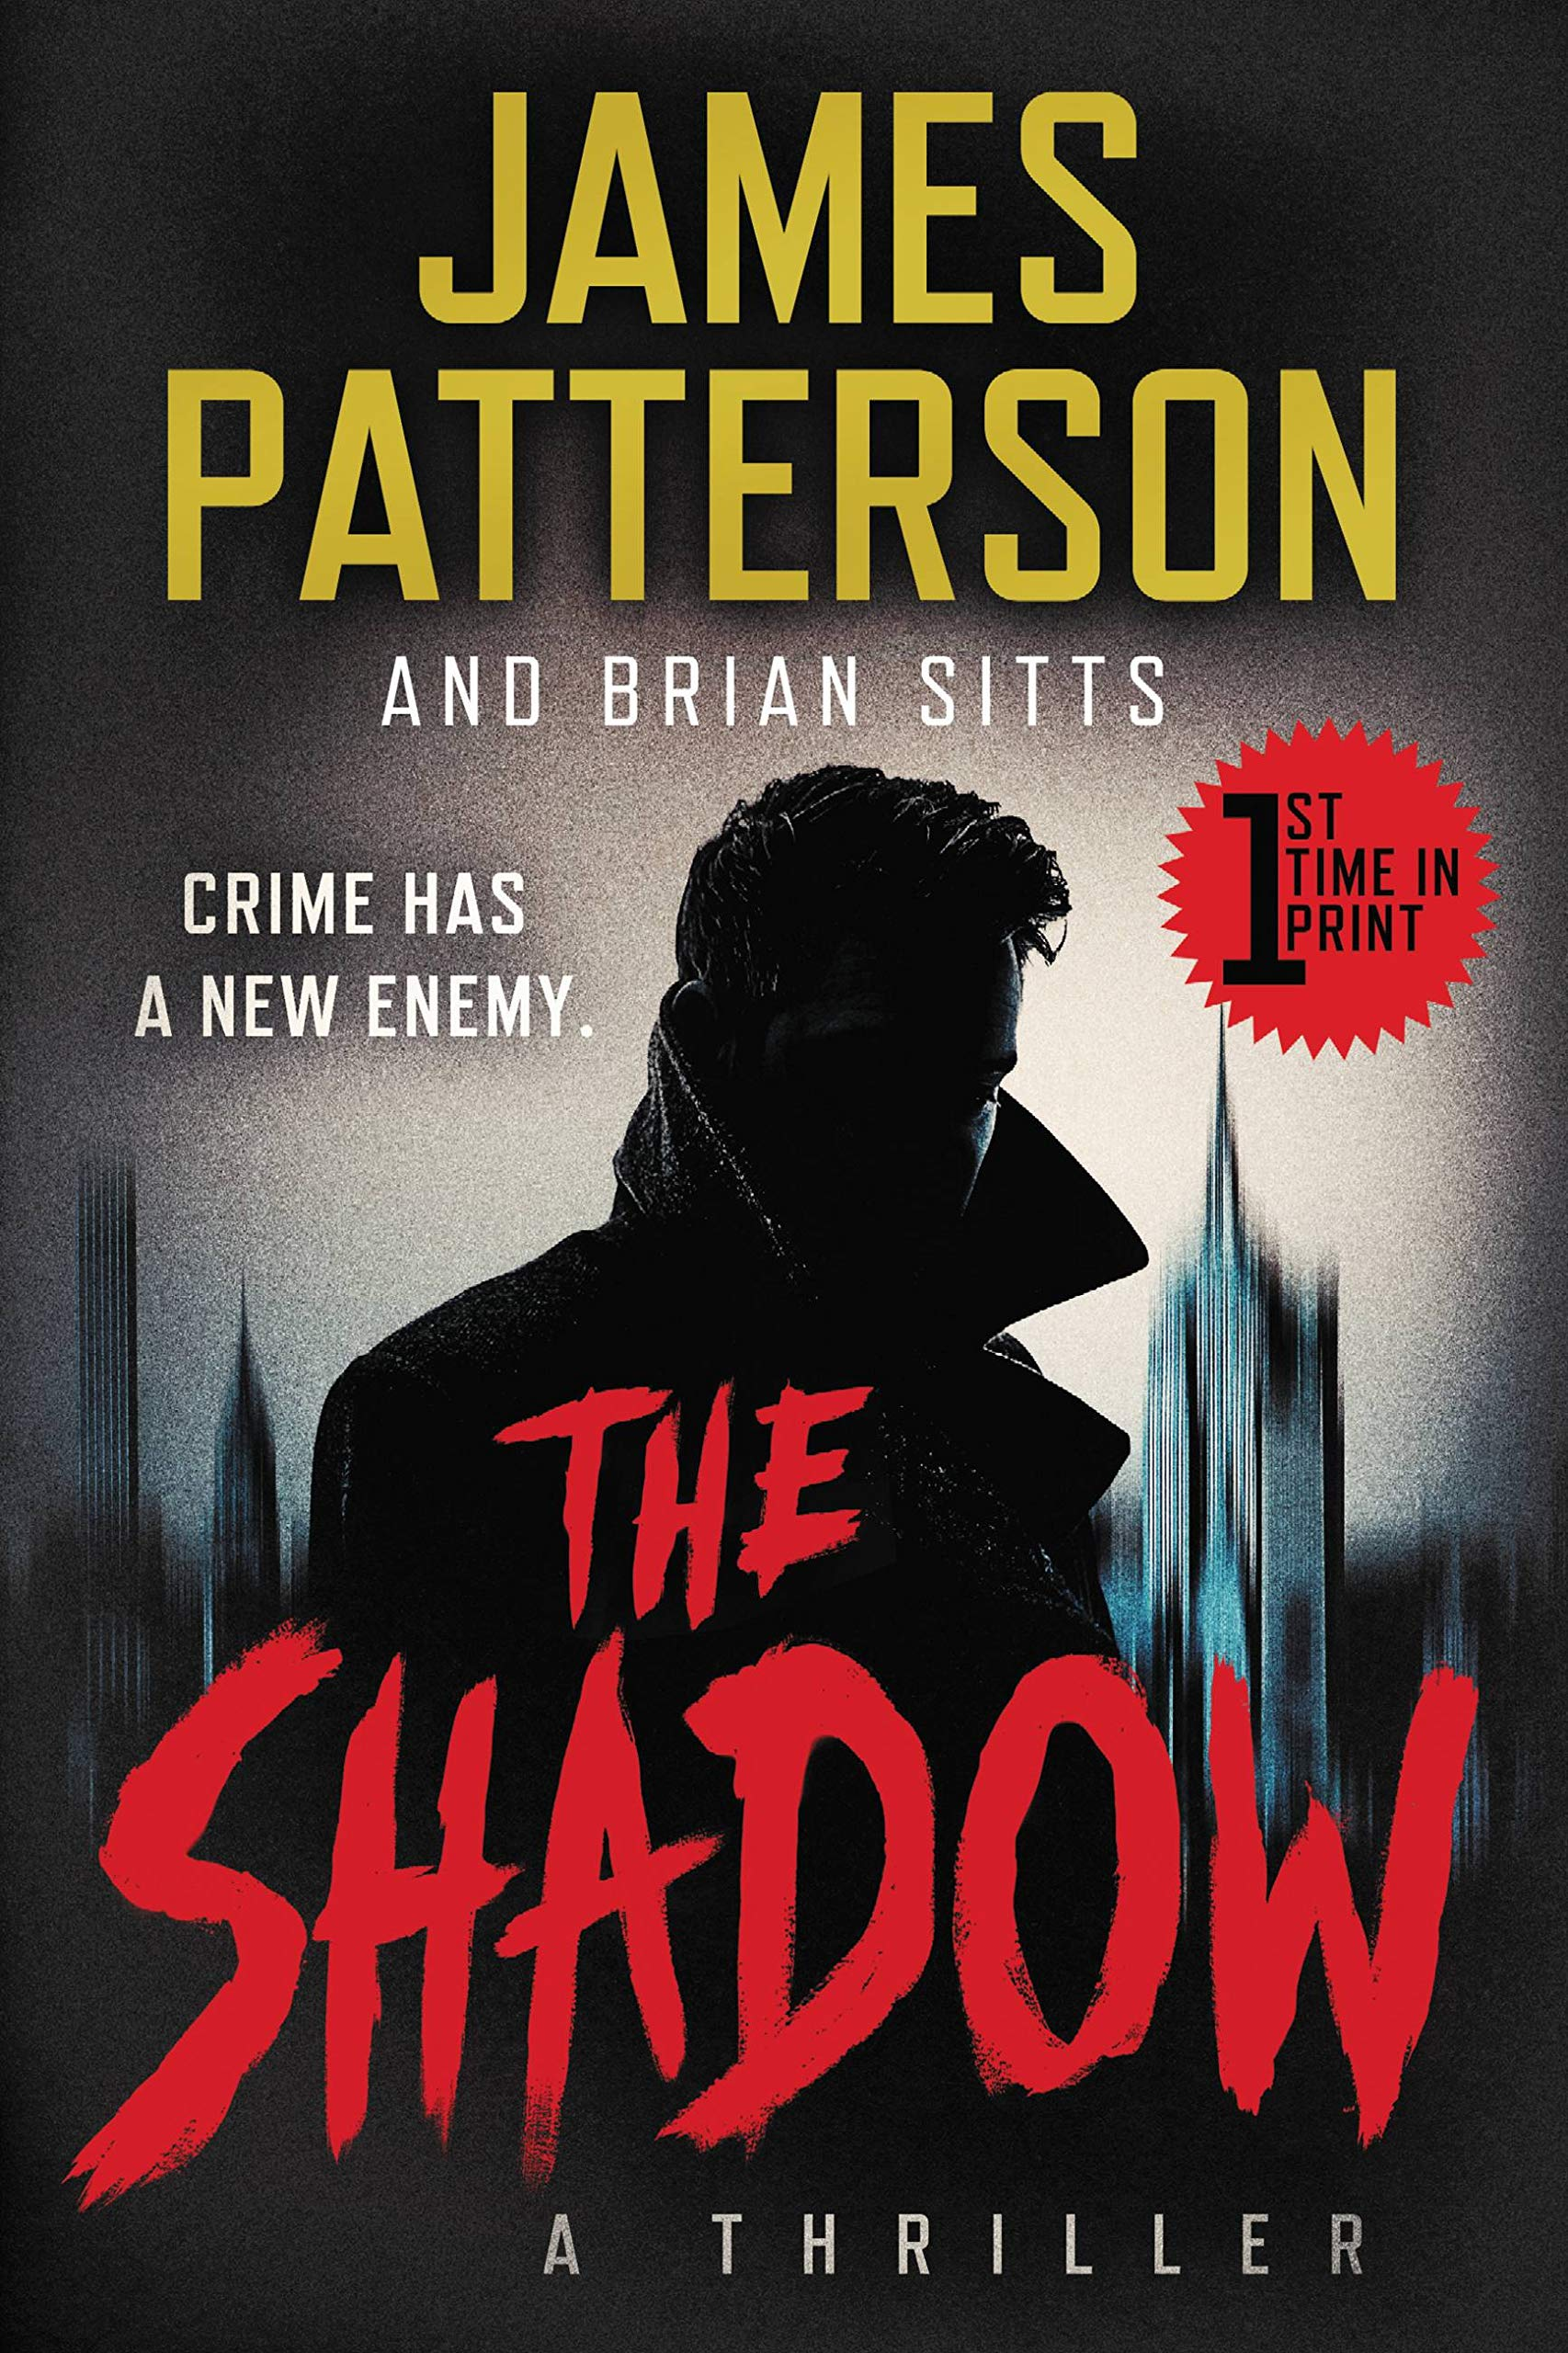 Amazon.com: The Shadow: 9781538703953: Patterson, James, Sitts, Brian: Books